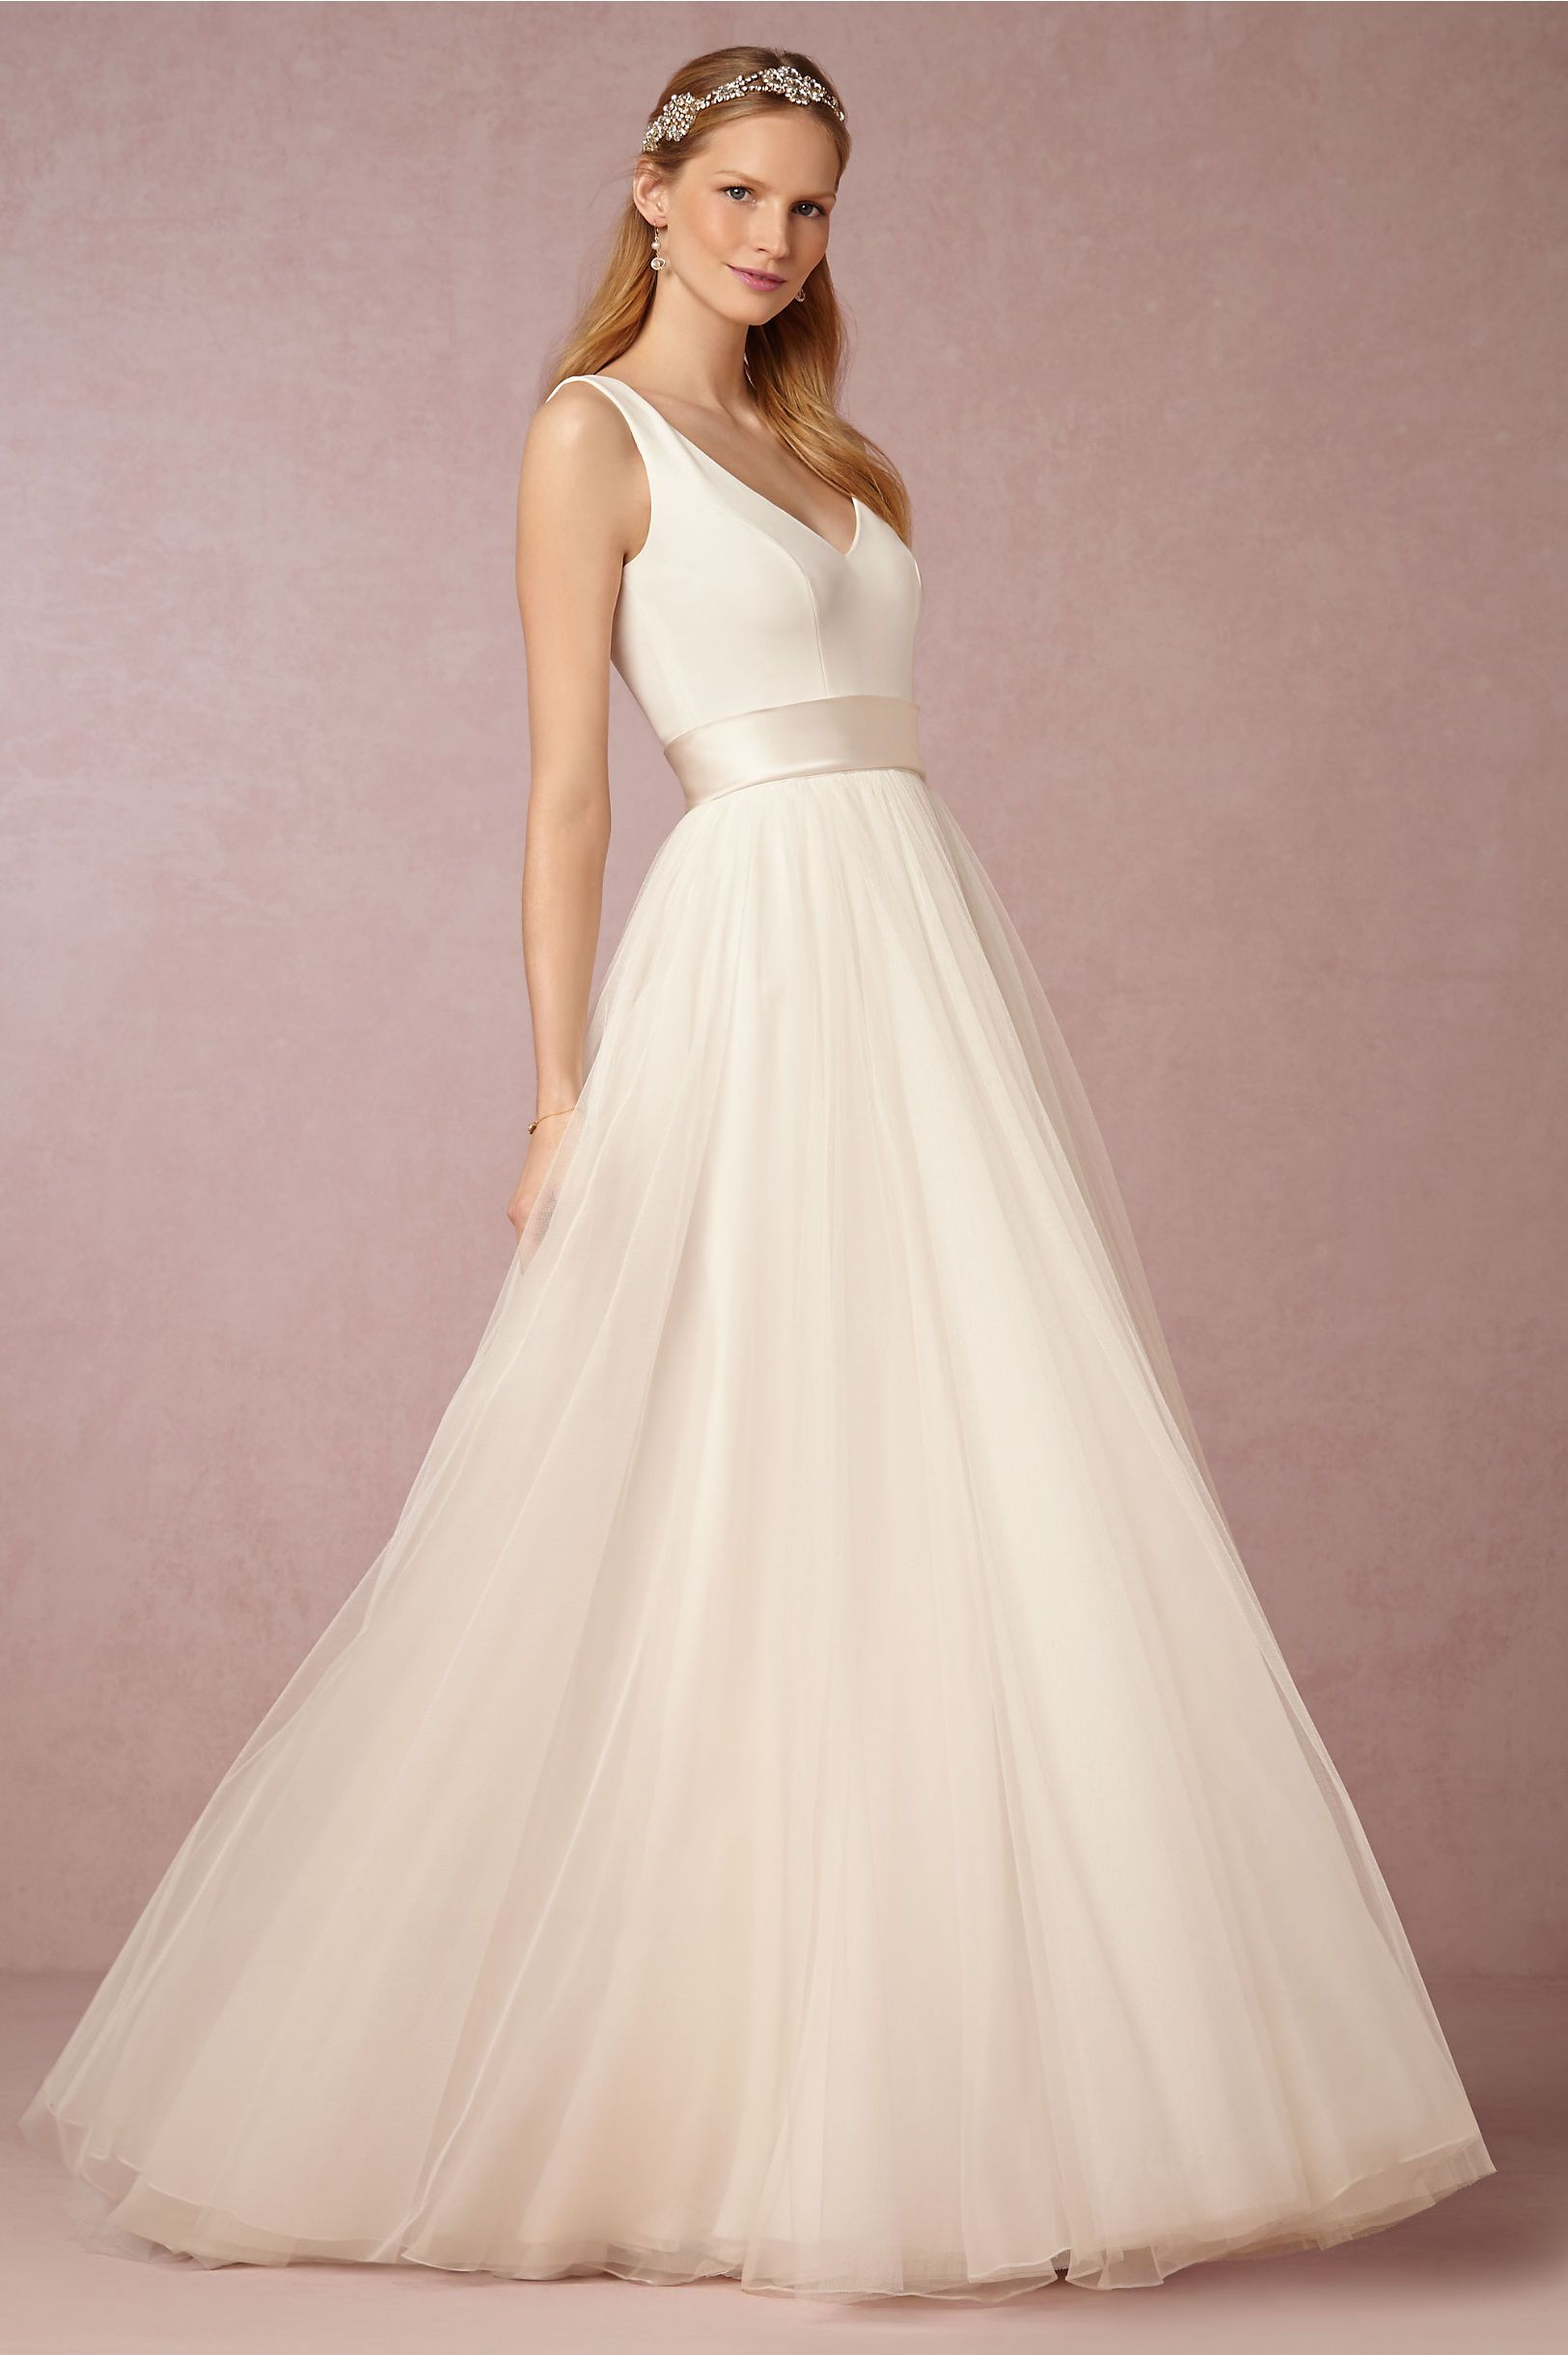 BHLDN Fabienne Gown | The Dress | Pinterest | Gowns, Wedding dress ...